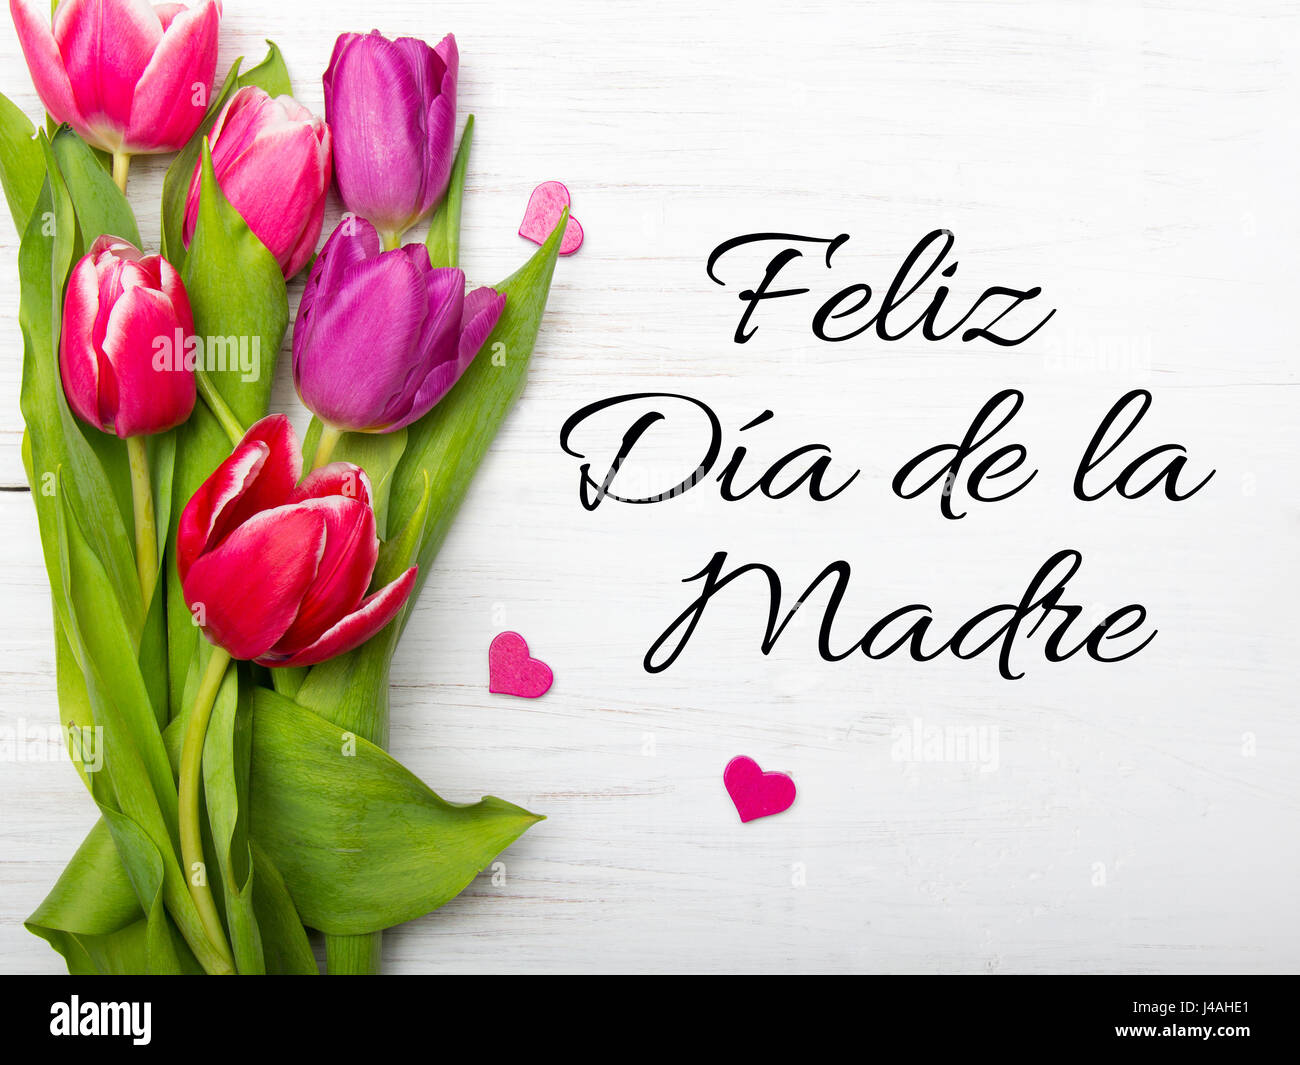 Mothers day card with spanish words happy mothers day and mothers day card with spanish words happy mothers day and tulip flowers frame on white wooden background kristyandbryce Image collections